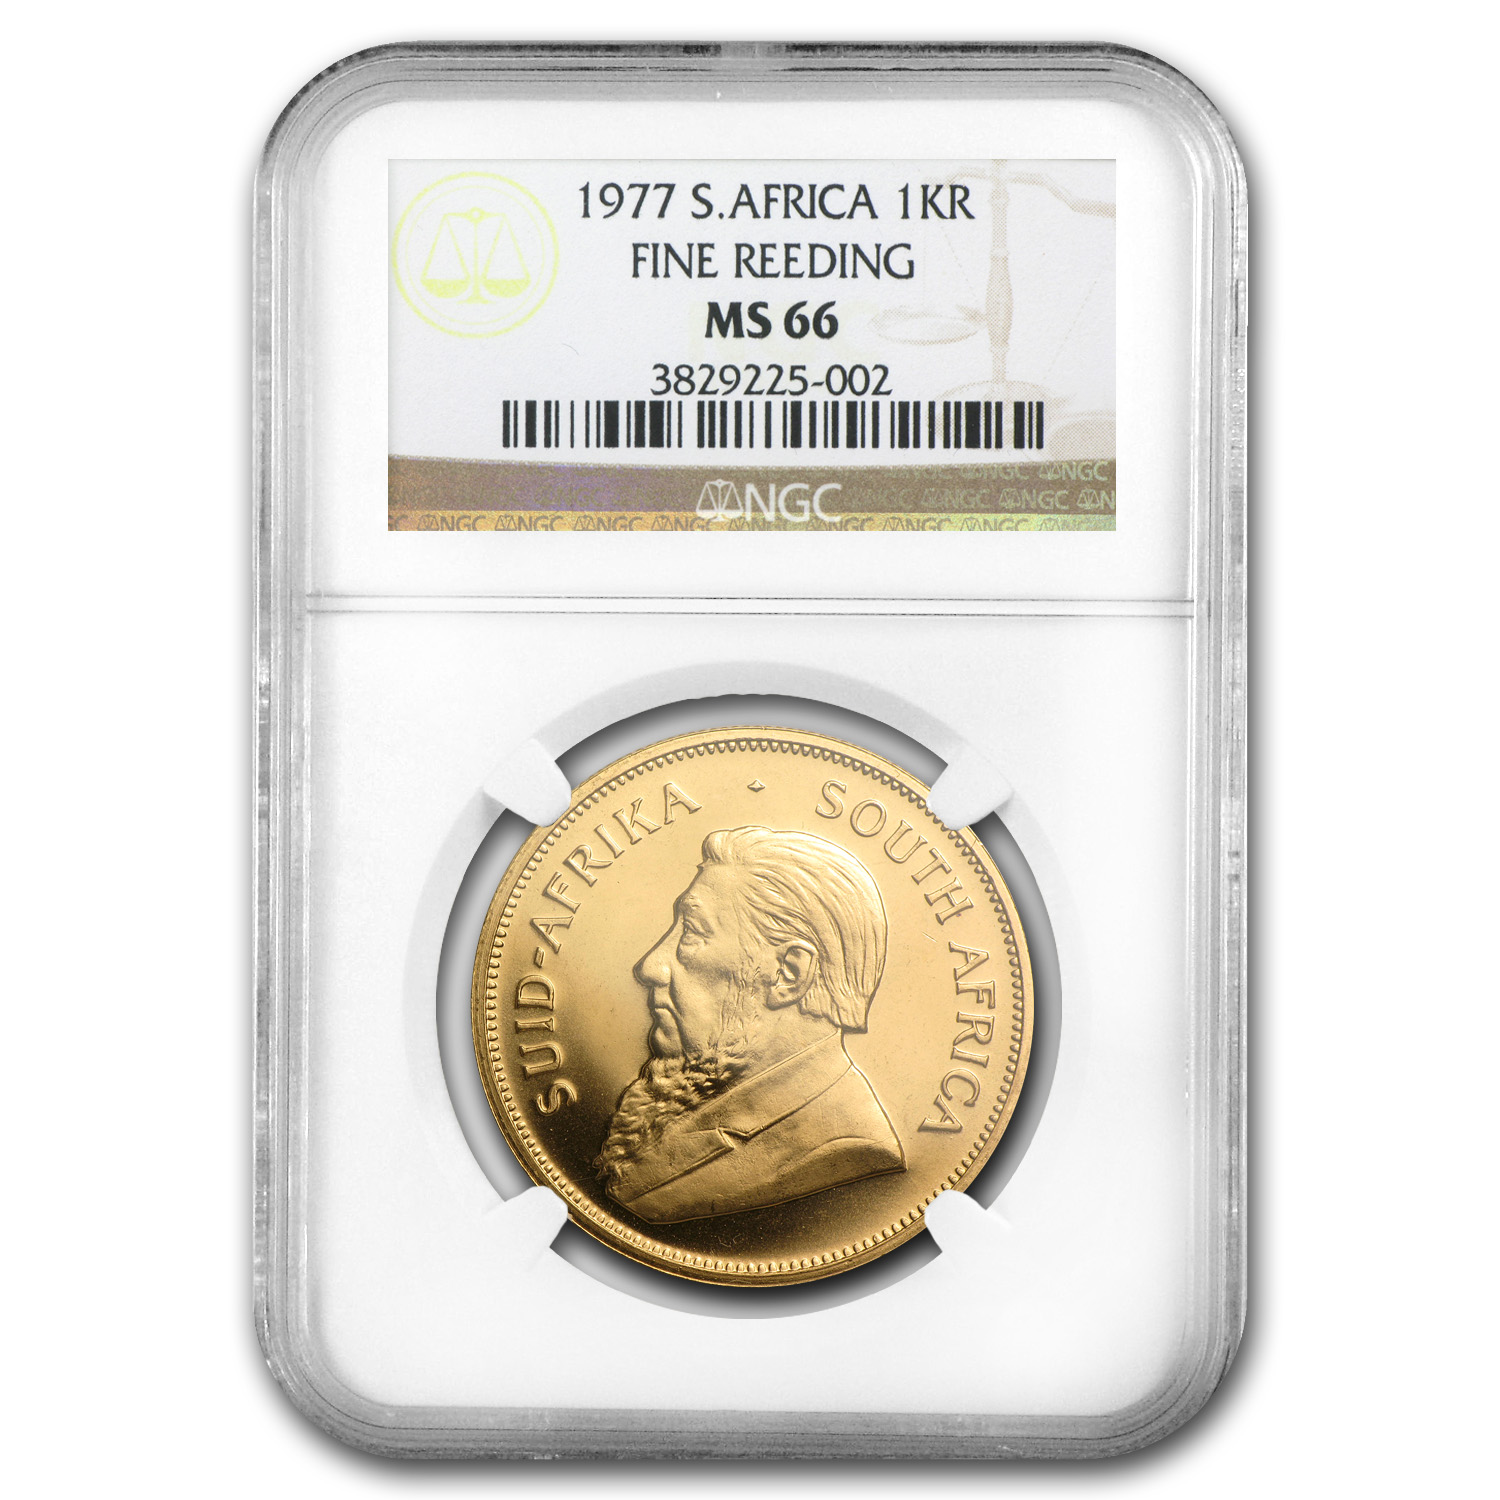 1977 1 oz Gold South African Krugerrand MS-66 NGC (Fine Reeding)